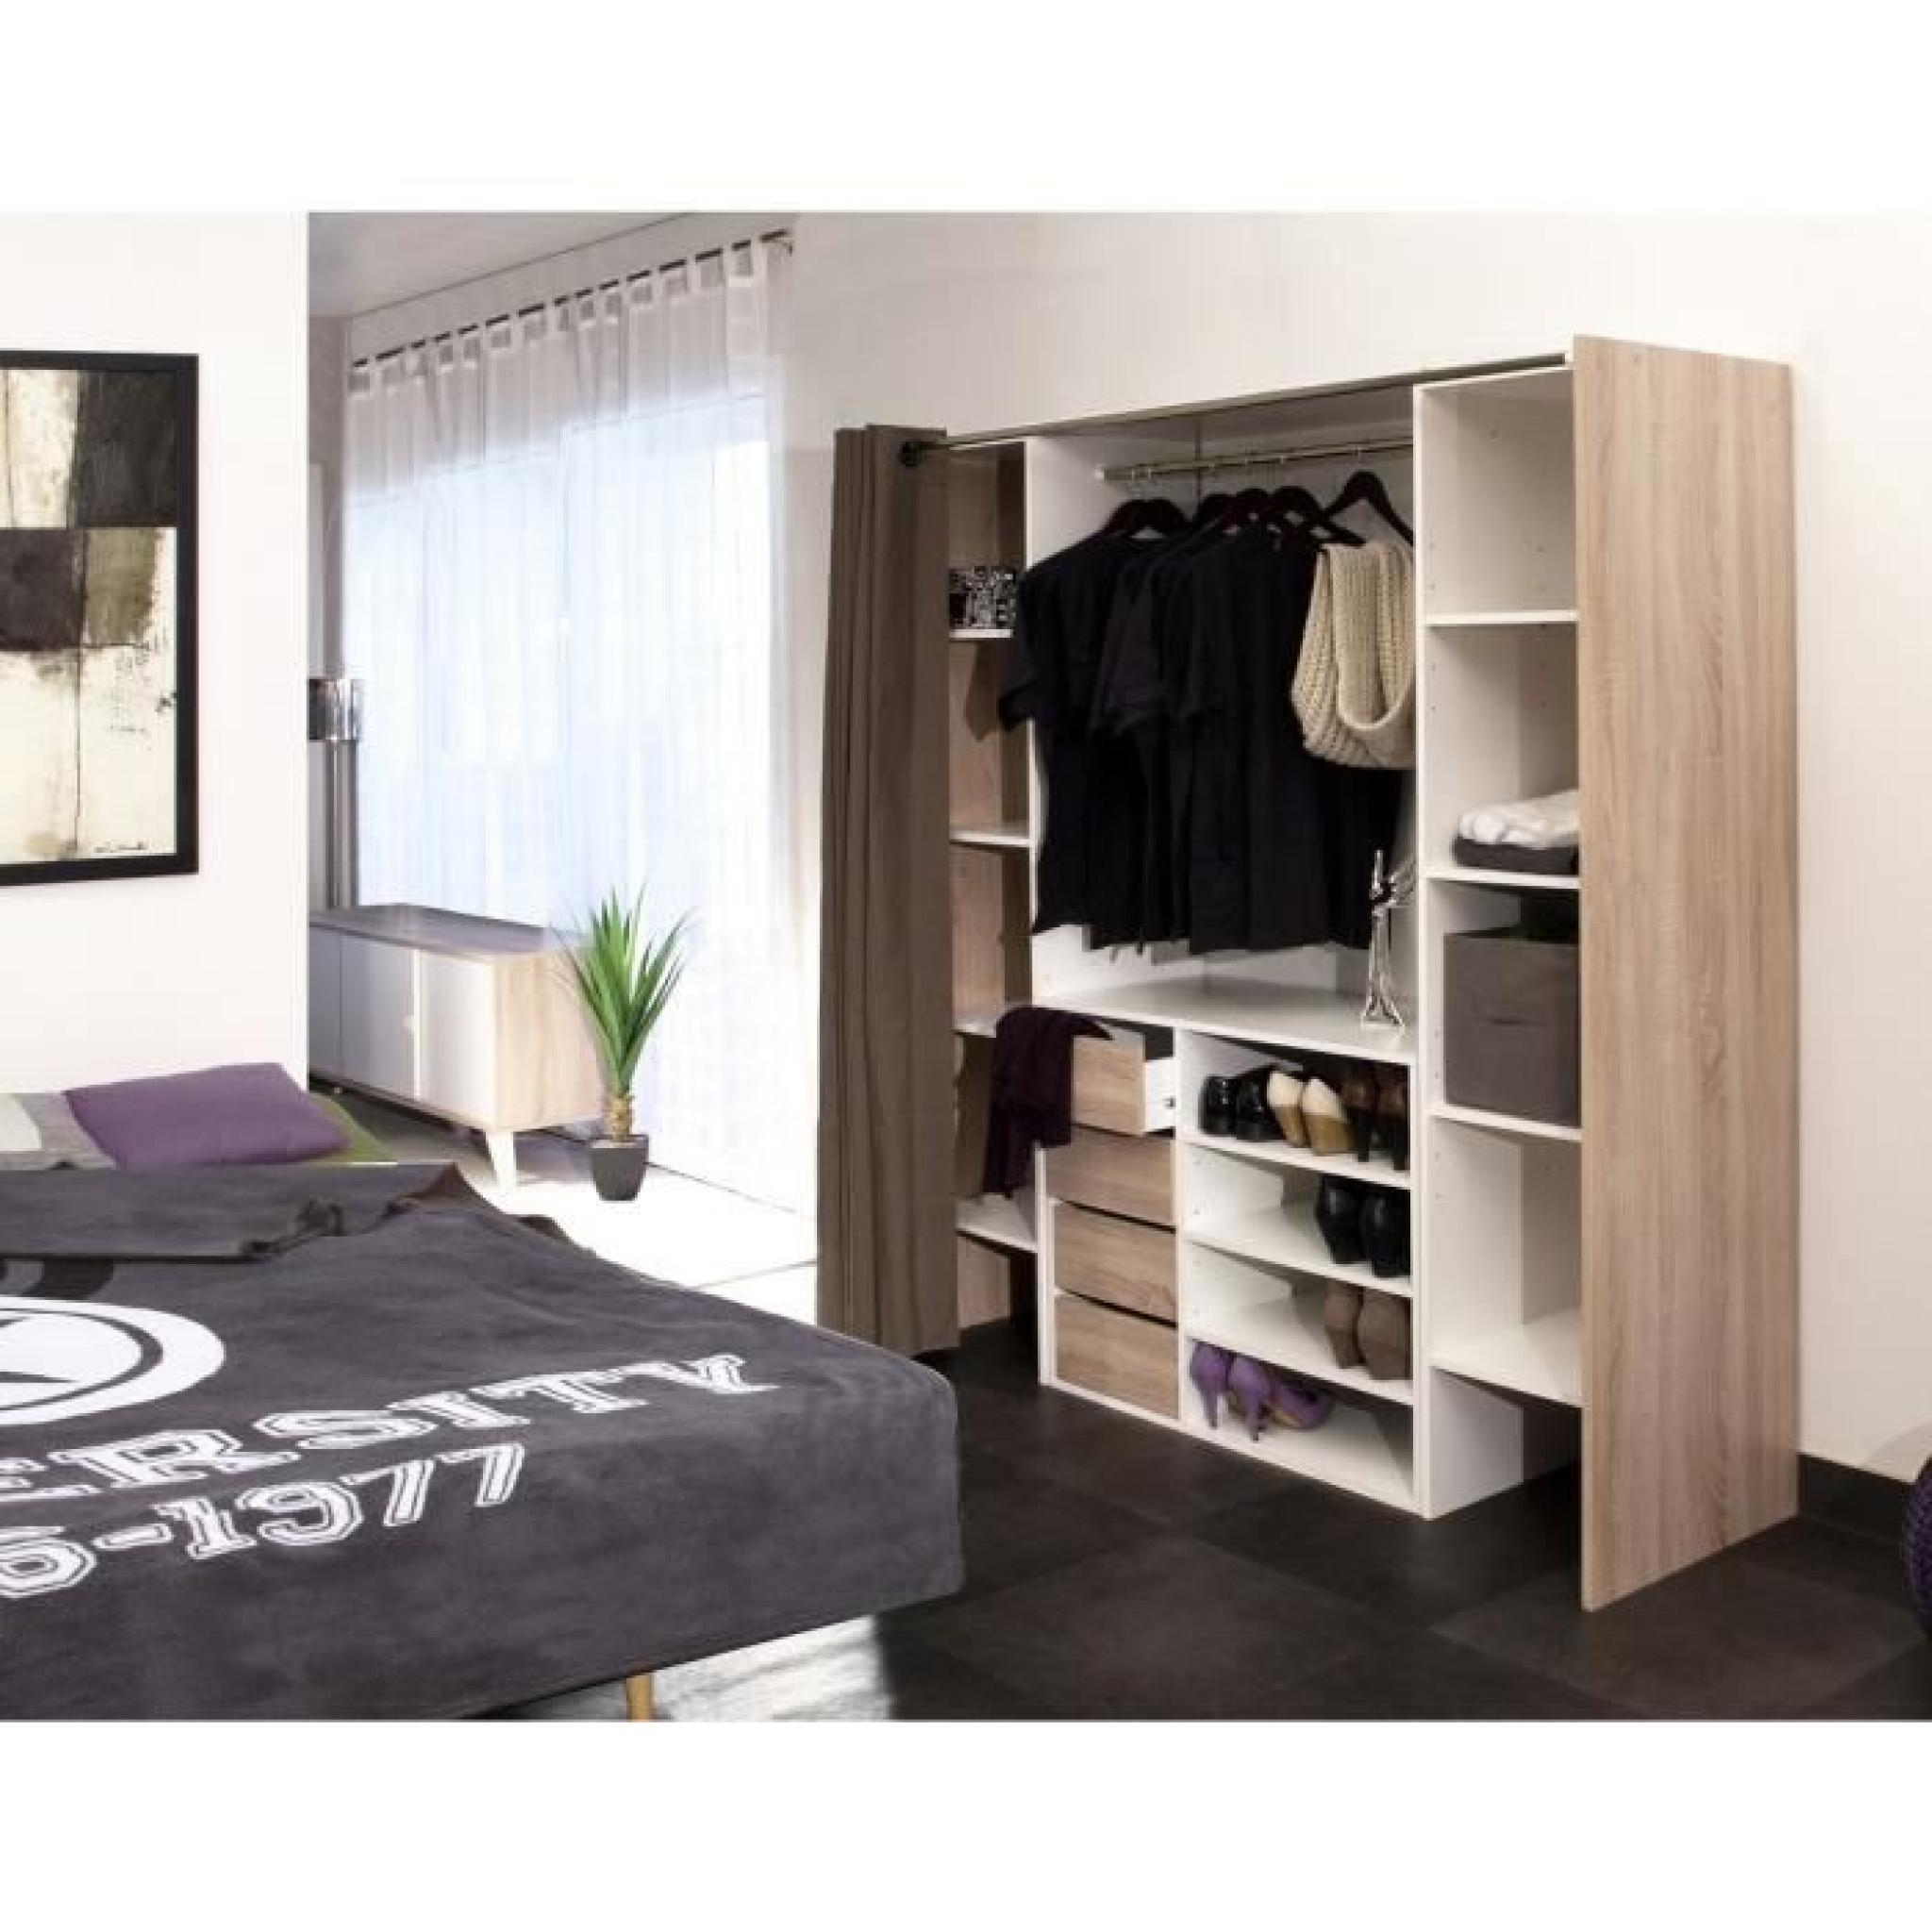 dressing ferm par un rideau rideaux pour dressing avec. Black Bedroom Furniture Sets. Home Design Ideas